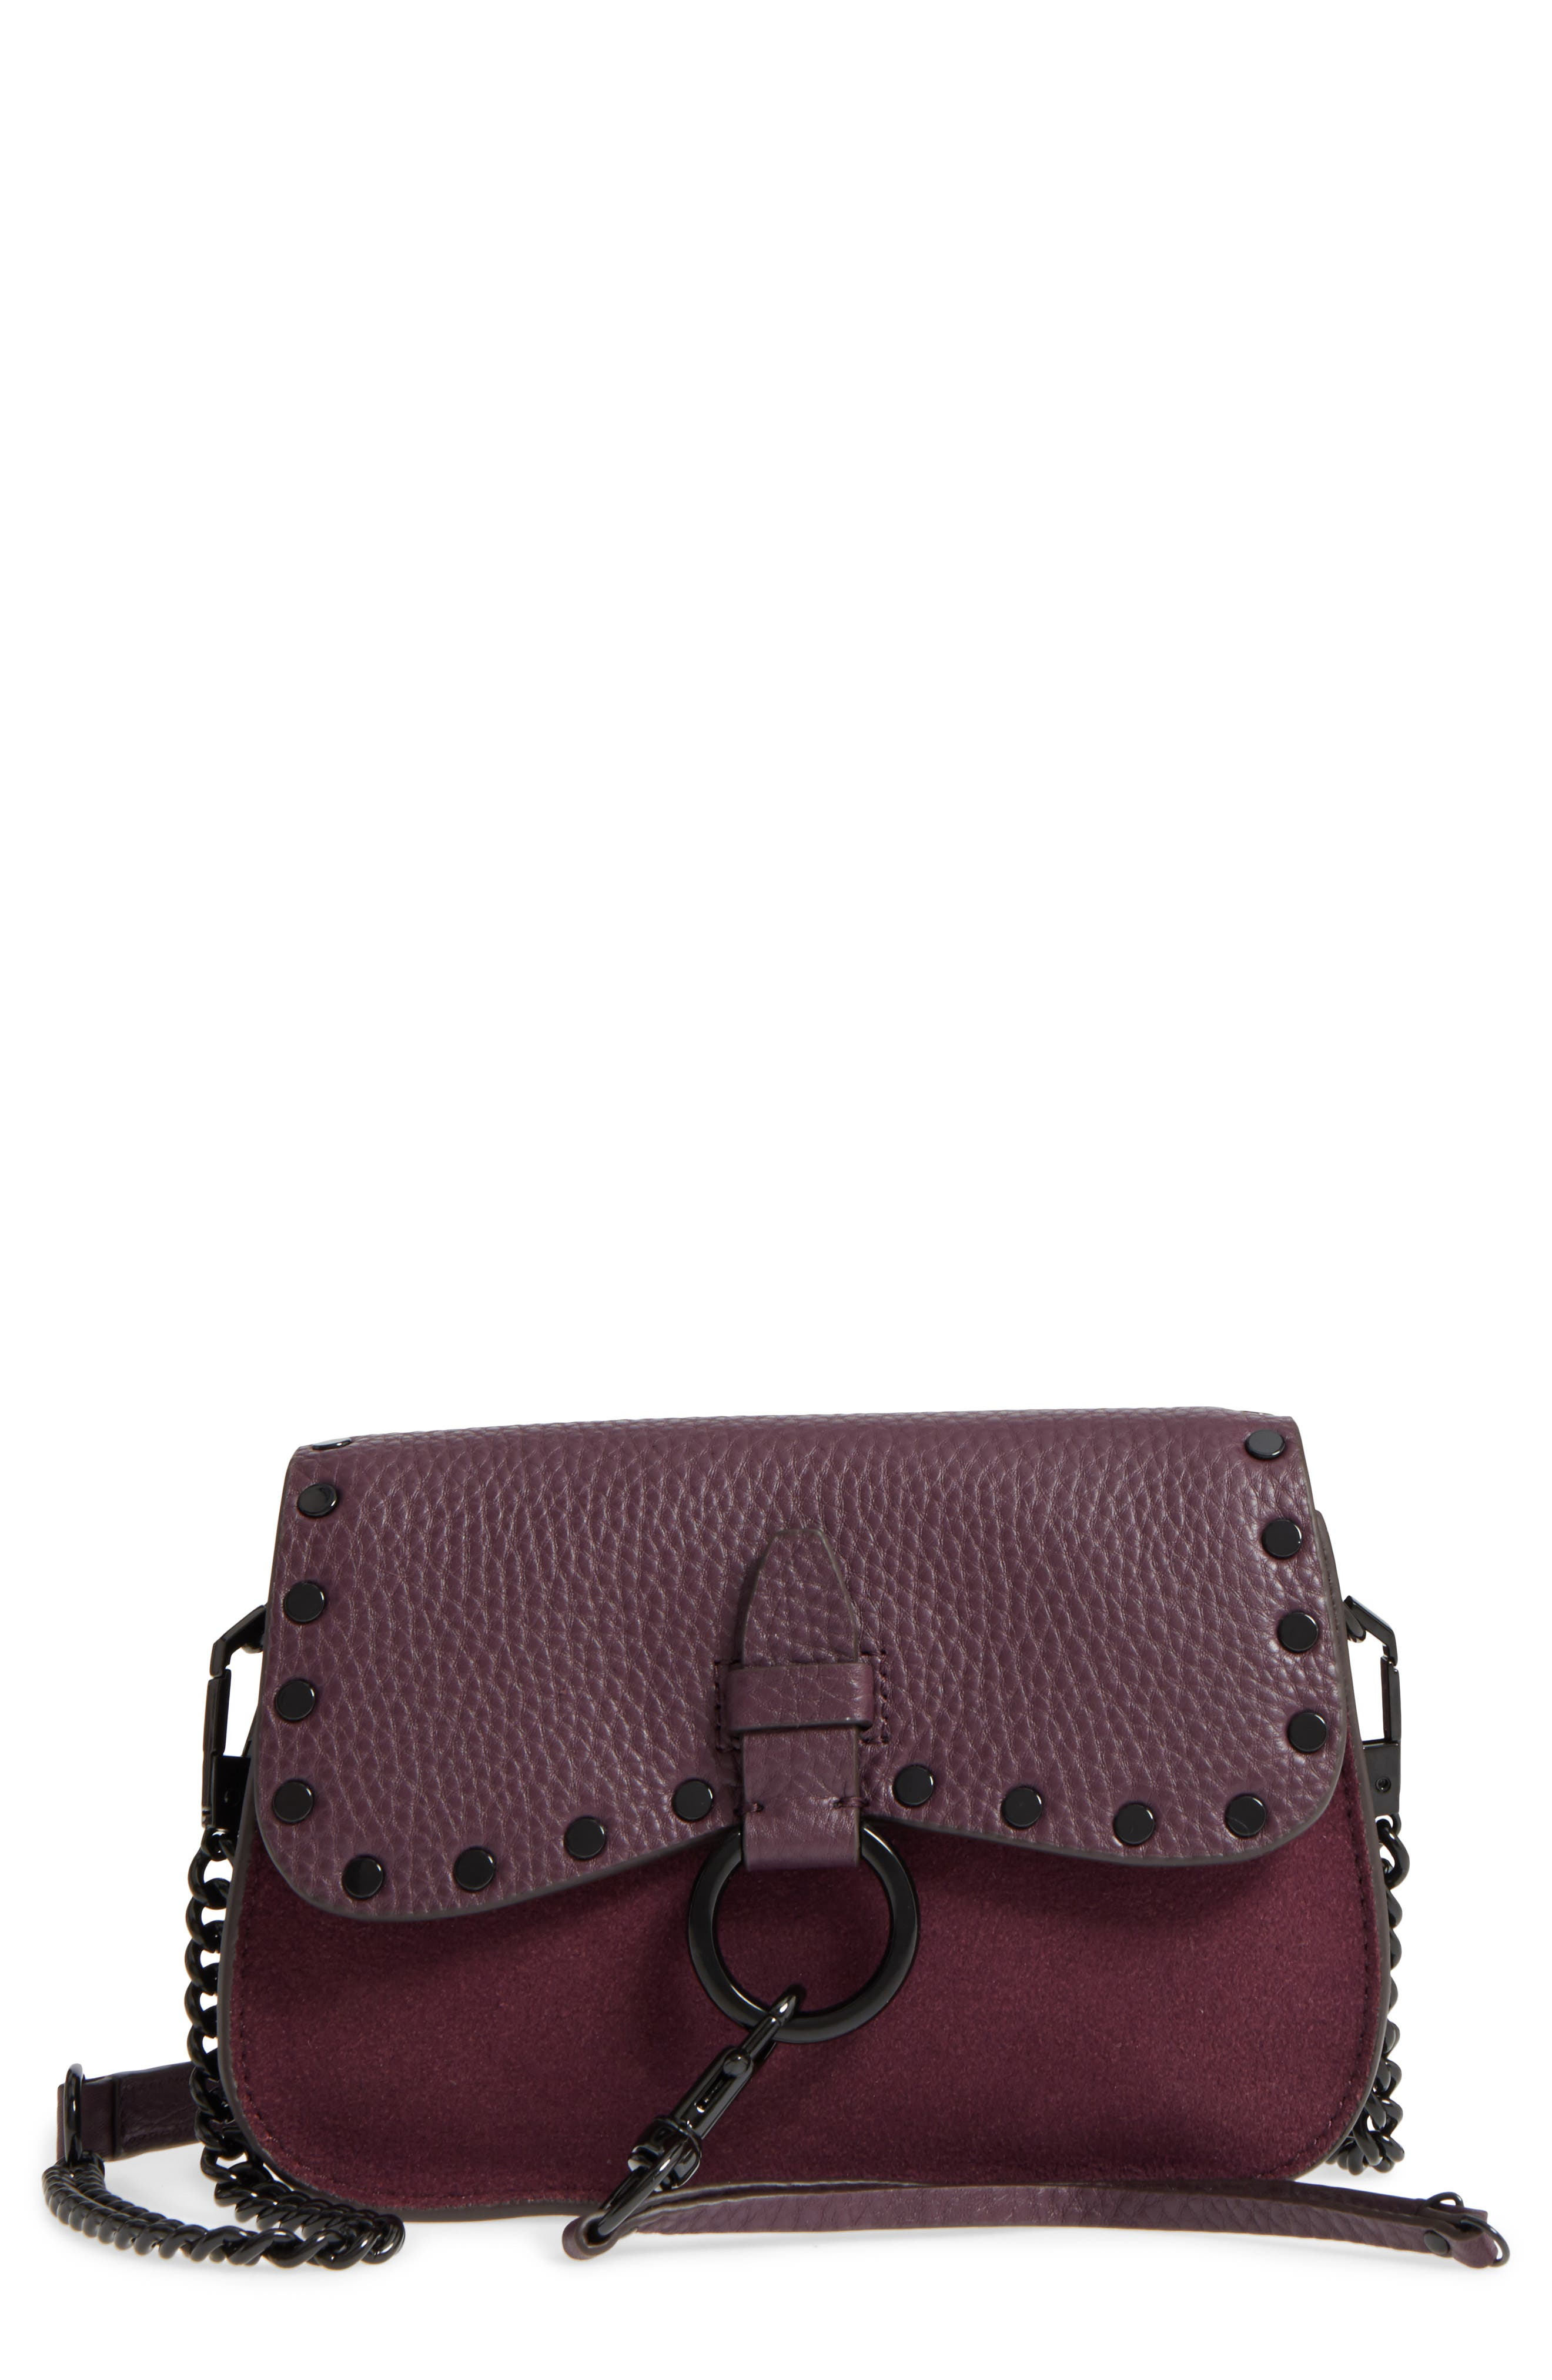 Rebecca Minkoff Small Keith Suede & Leather Saddle Bag